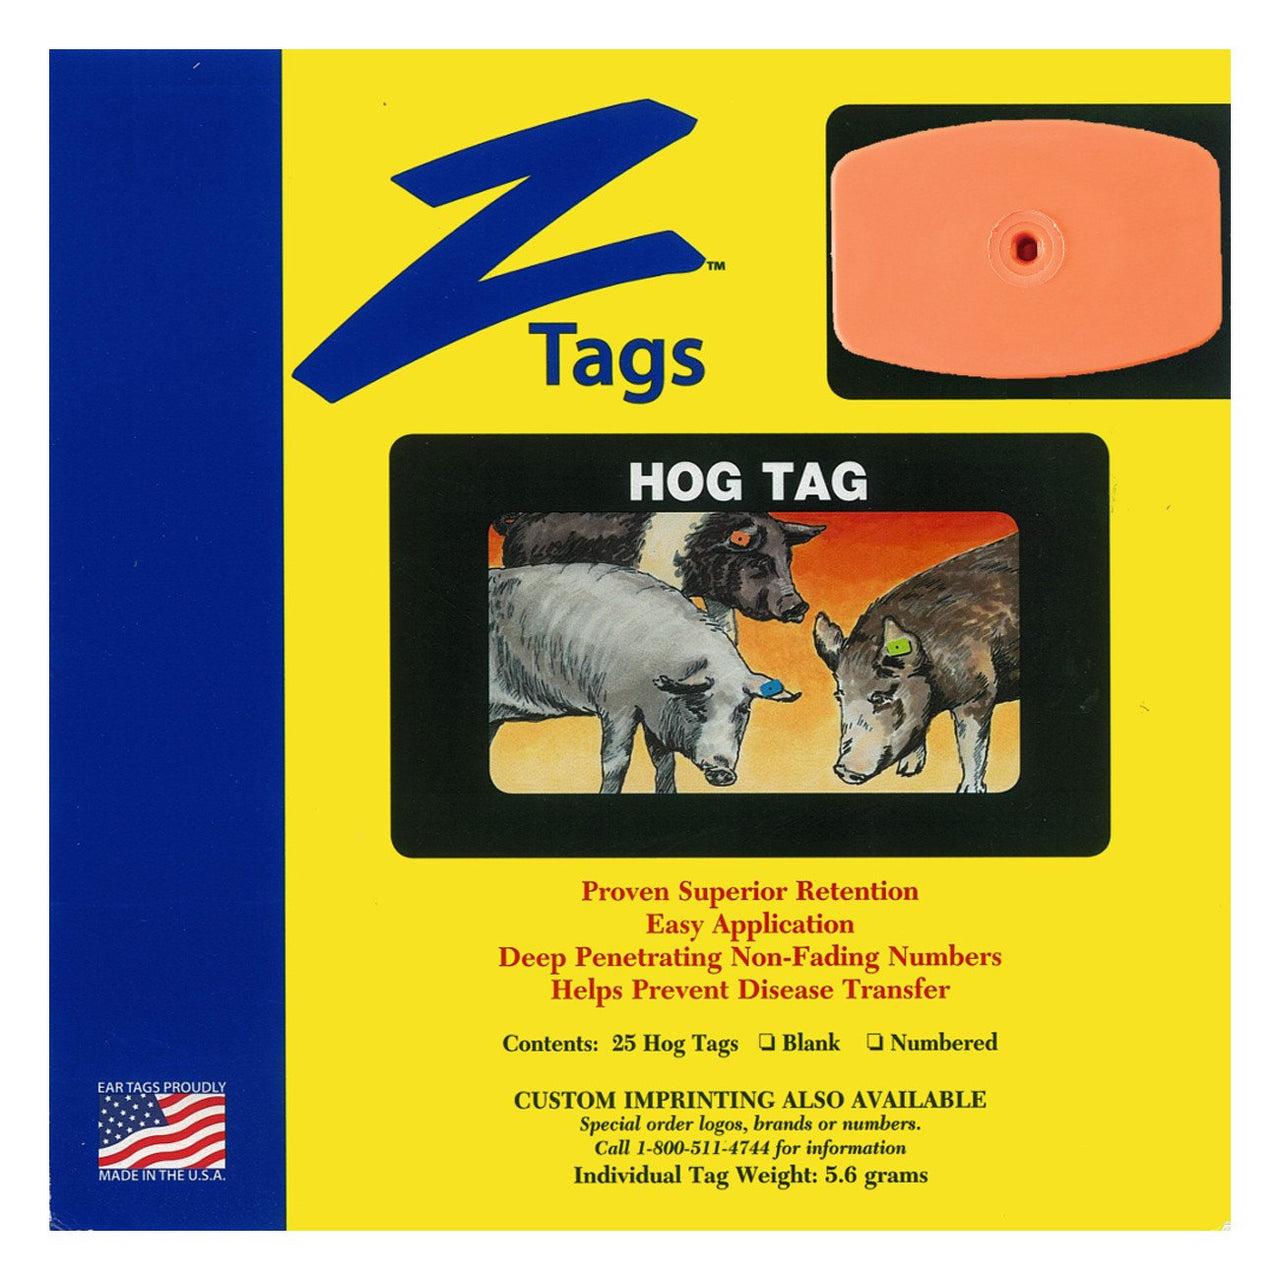 Z Tags 1 Piece Hog Blank (Orange) 25 Pack - 1 Piece Hog Blank Tag Z Tags - Canada